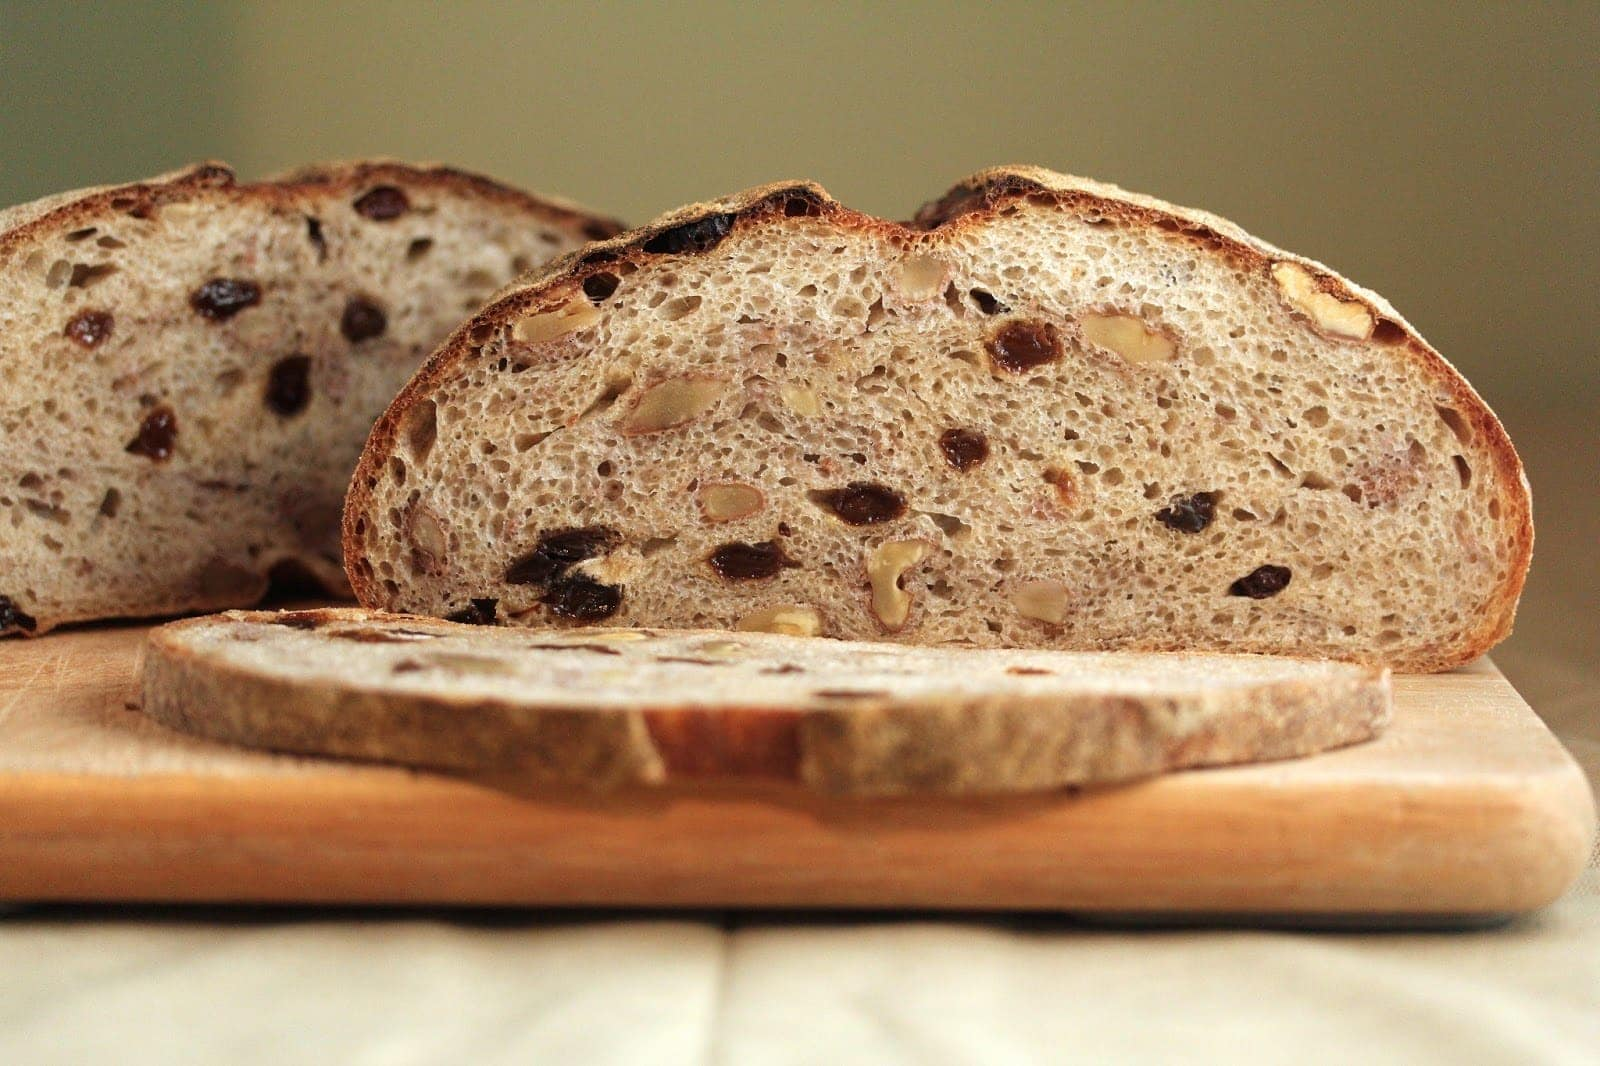 This authentic Italian bread recipe will make you think twice before buying one.